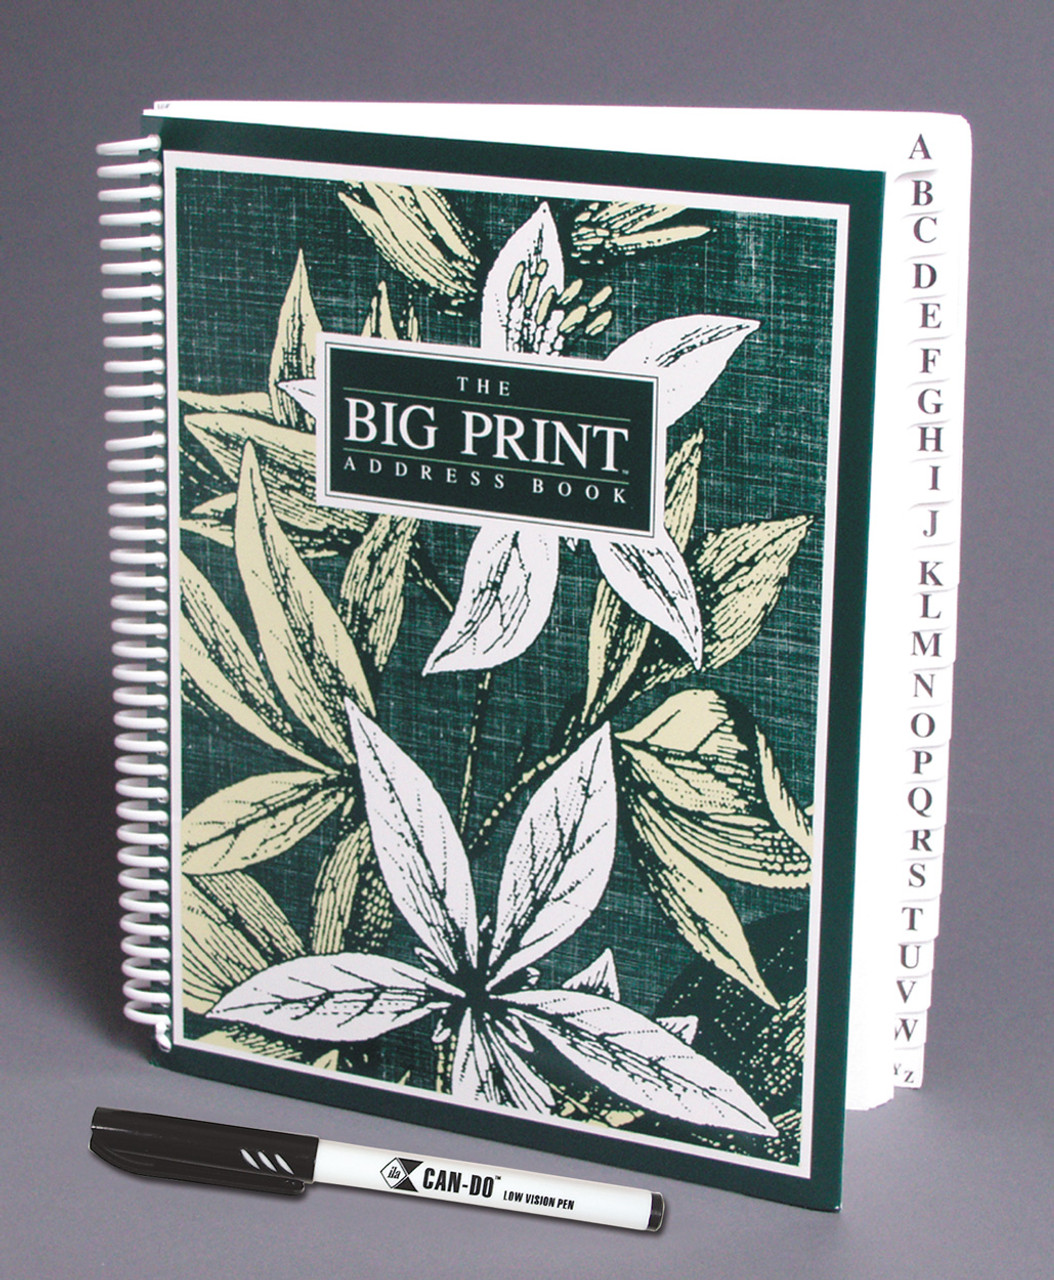 Big Print Address Book With ILA Low Vision Pen